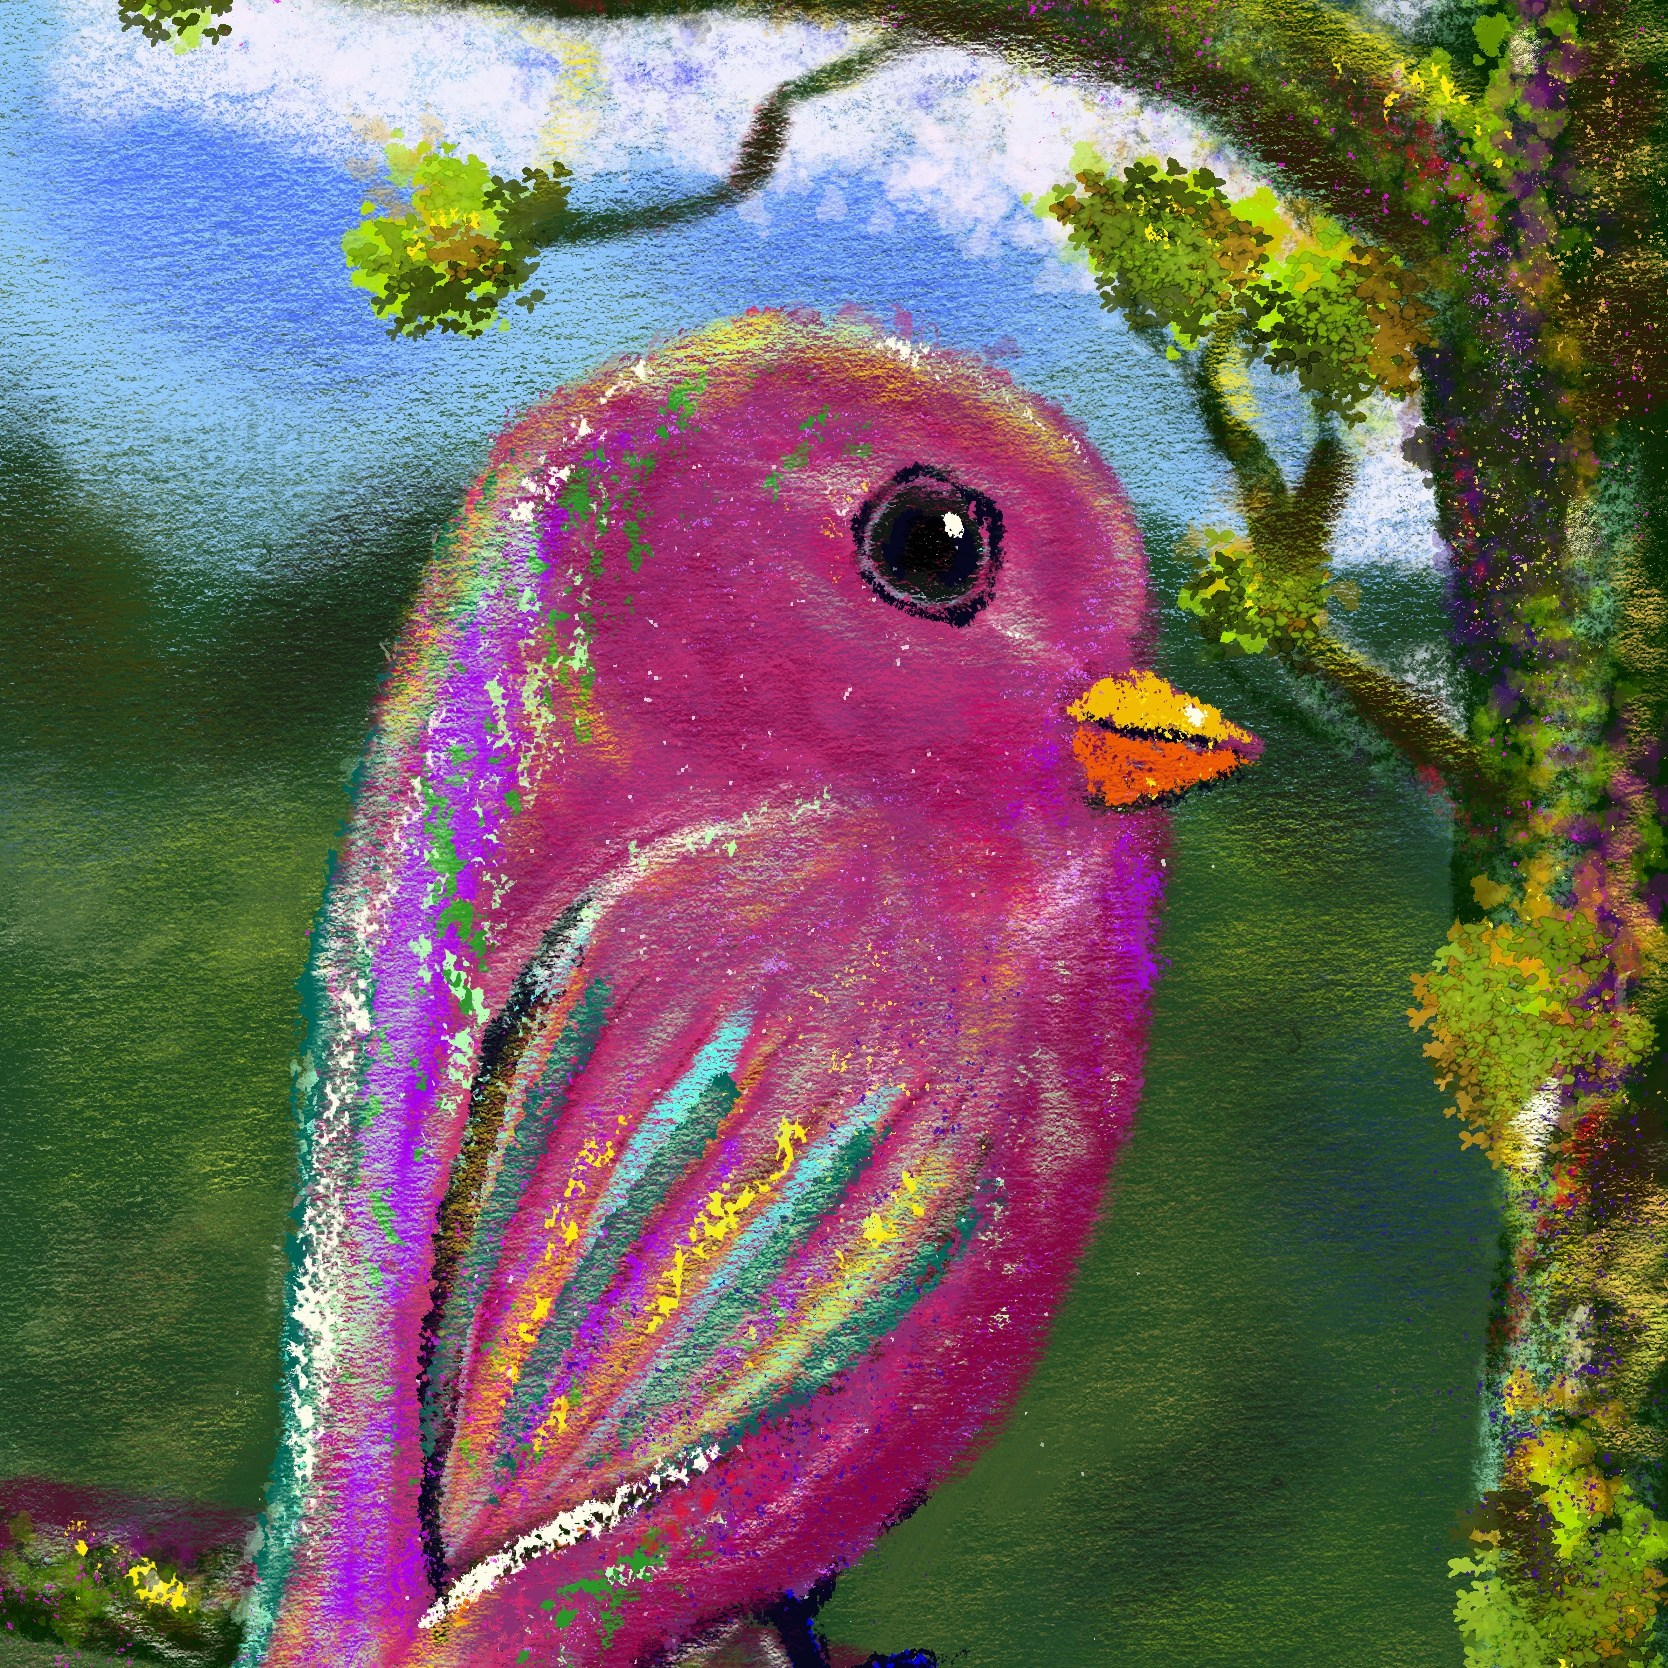 A pastel painting of a pink bird sitting on a tree branch